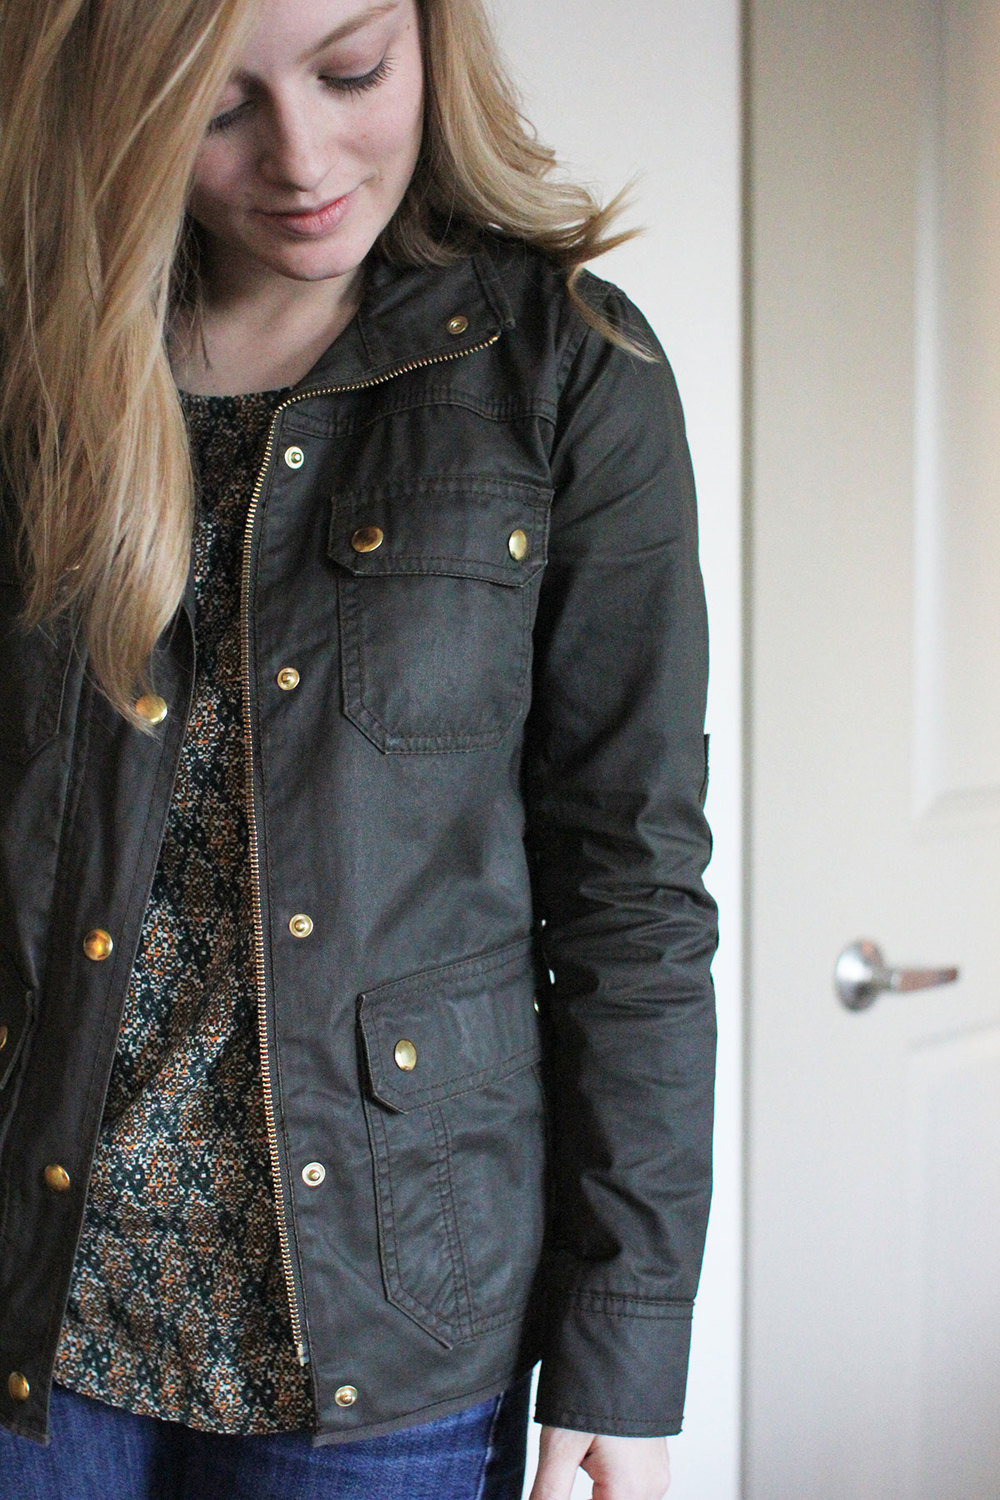 That Classic Jacket | That's Pretty Ace